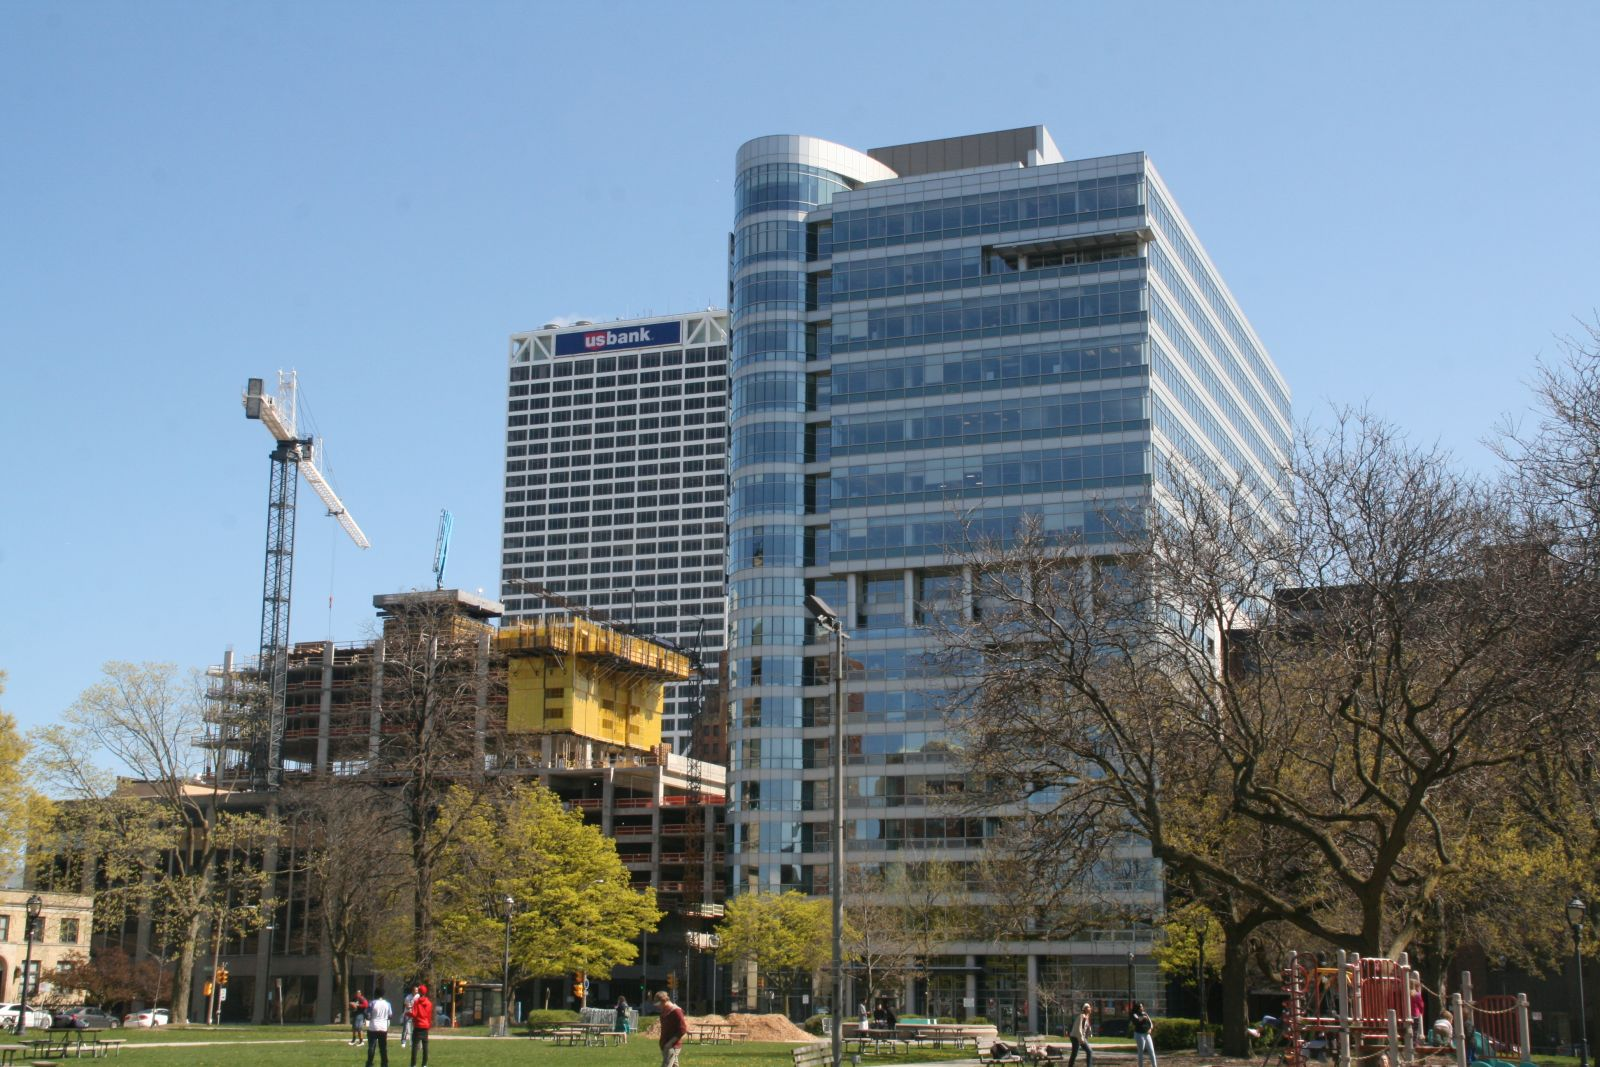 New NM Tower From Cathedral Square